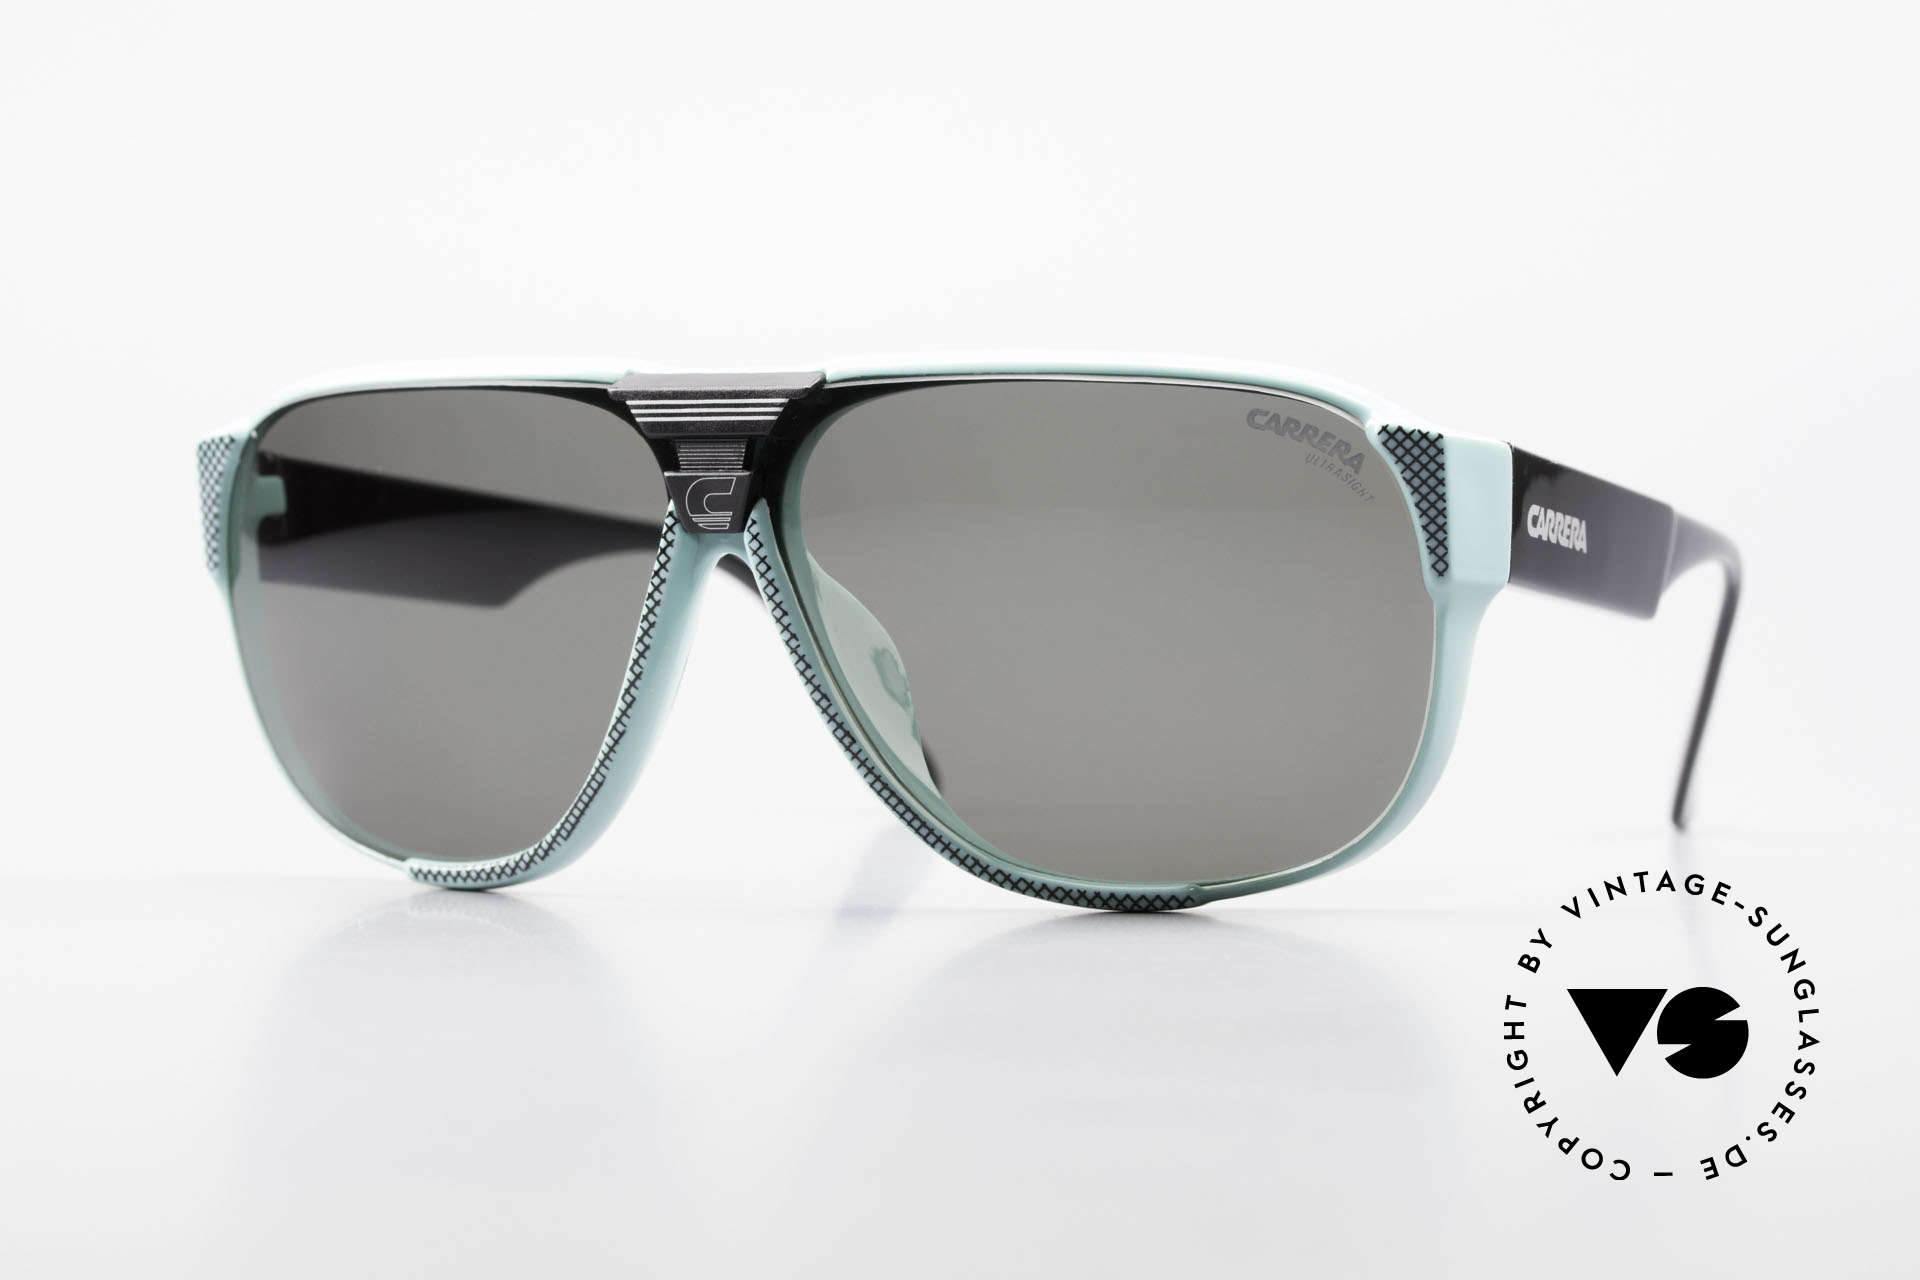 Carrera 5431 80's Vintage Sports Sunglasses, Carrera Alpine-Changer sports shades from 1988, Made for Men